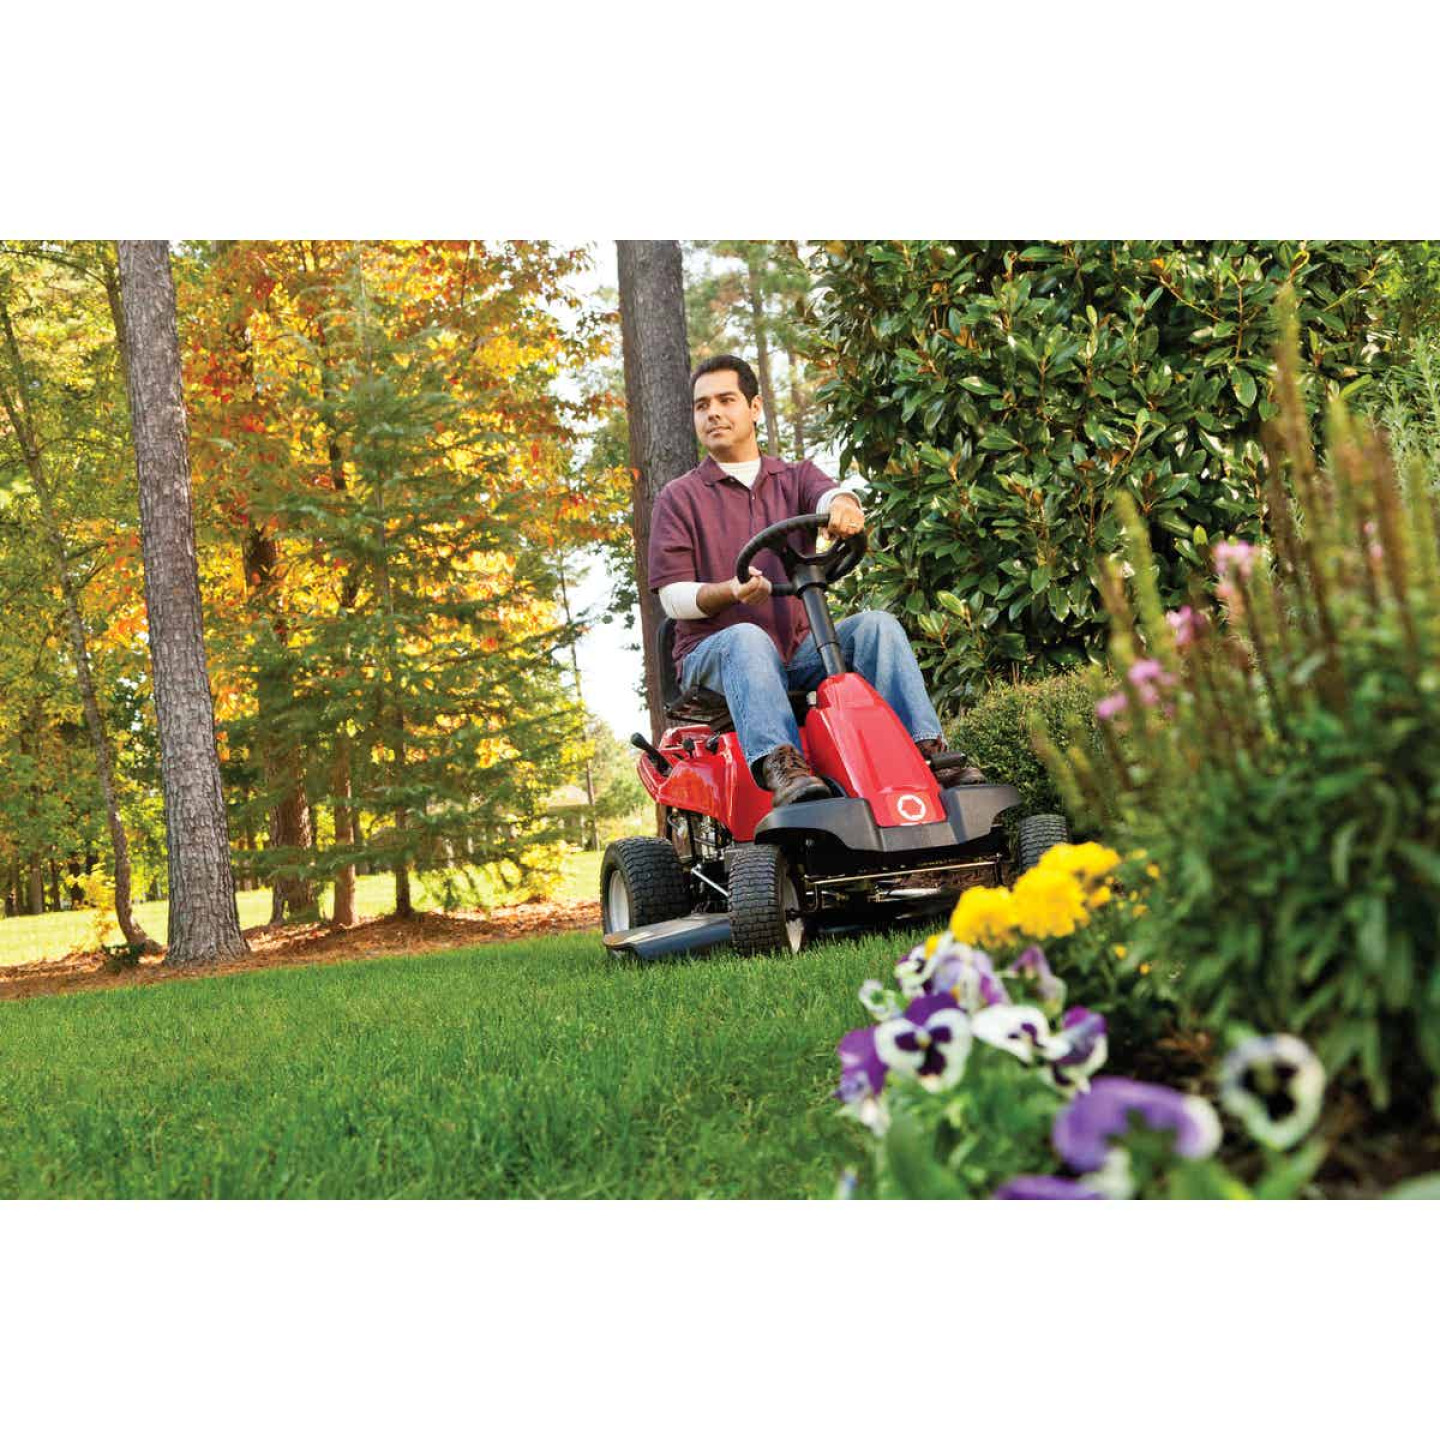 Troy-Bilt 30 In. 382cc Troy-Bilt Neighborhood Lawn Tractor Image 3